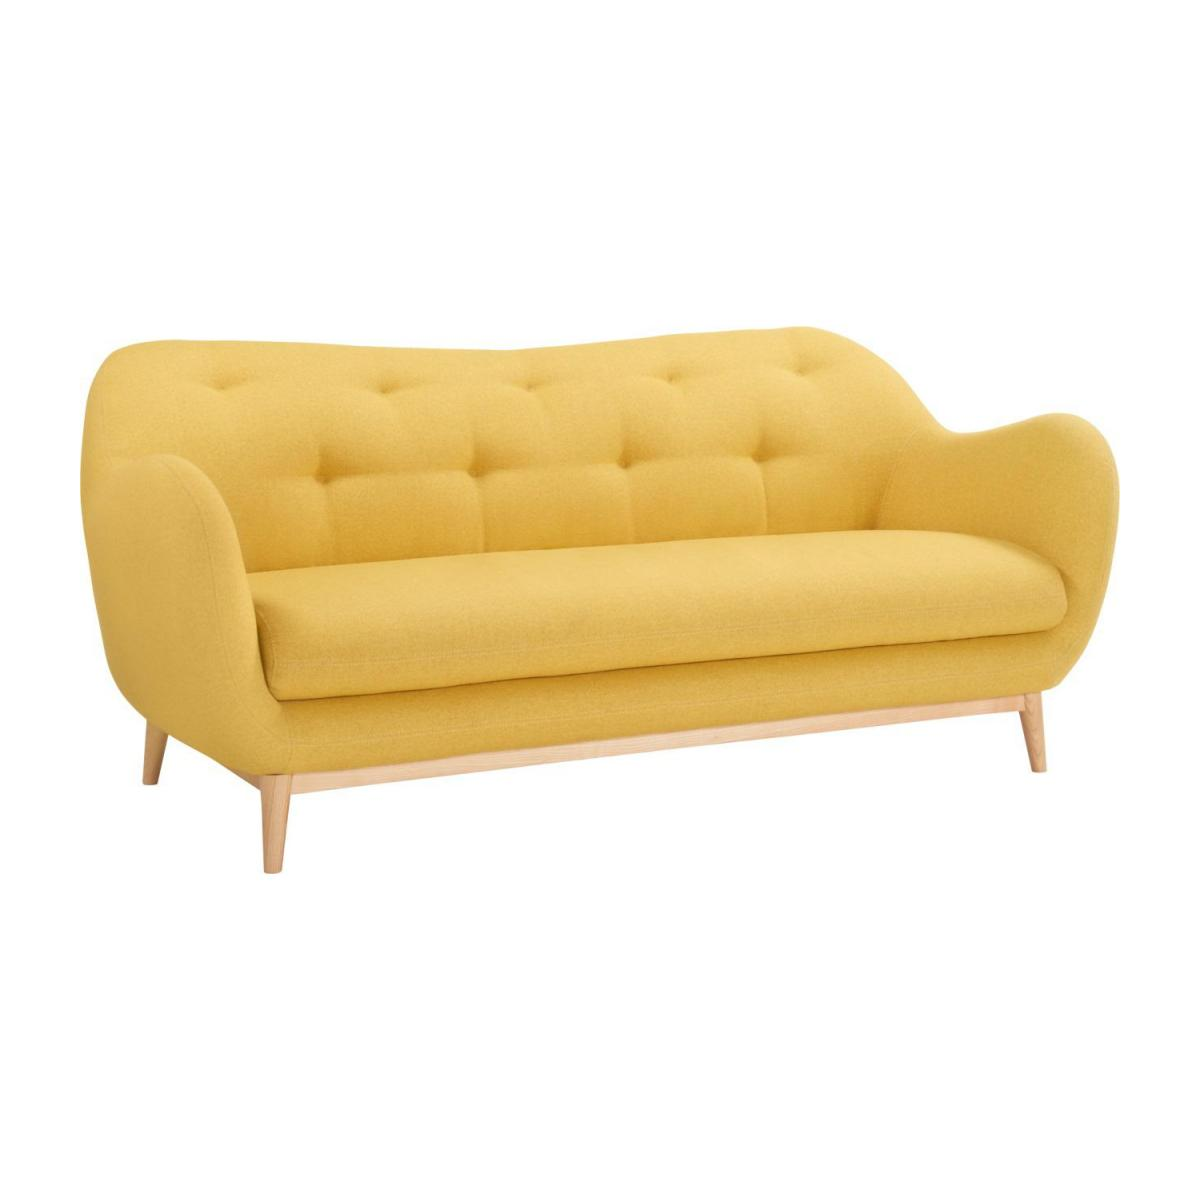 3-seat sofa made of fabric, yellow n°1